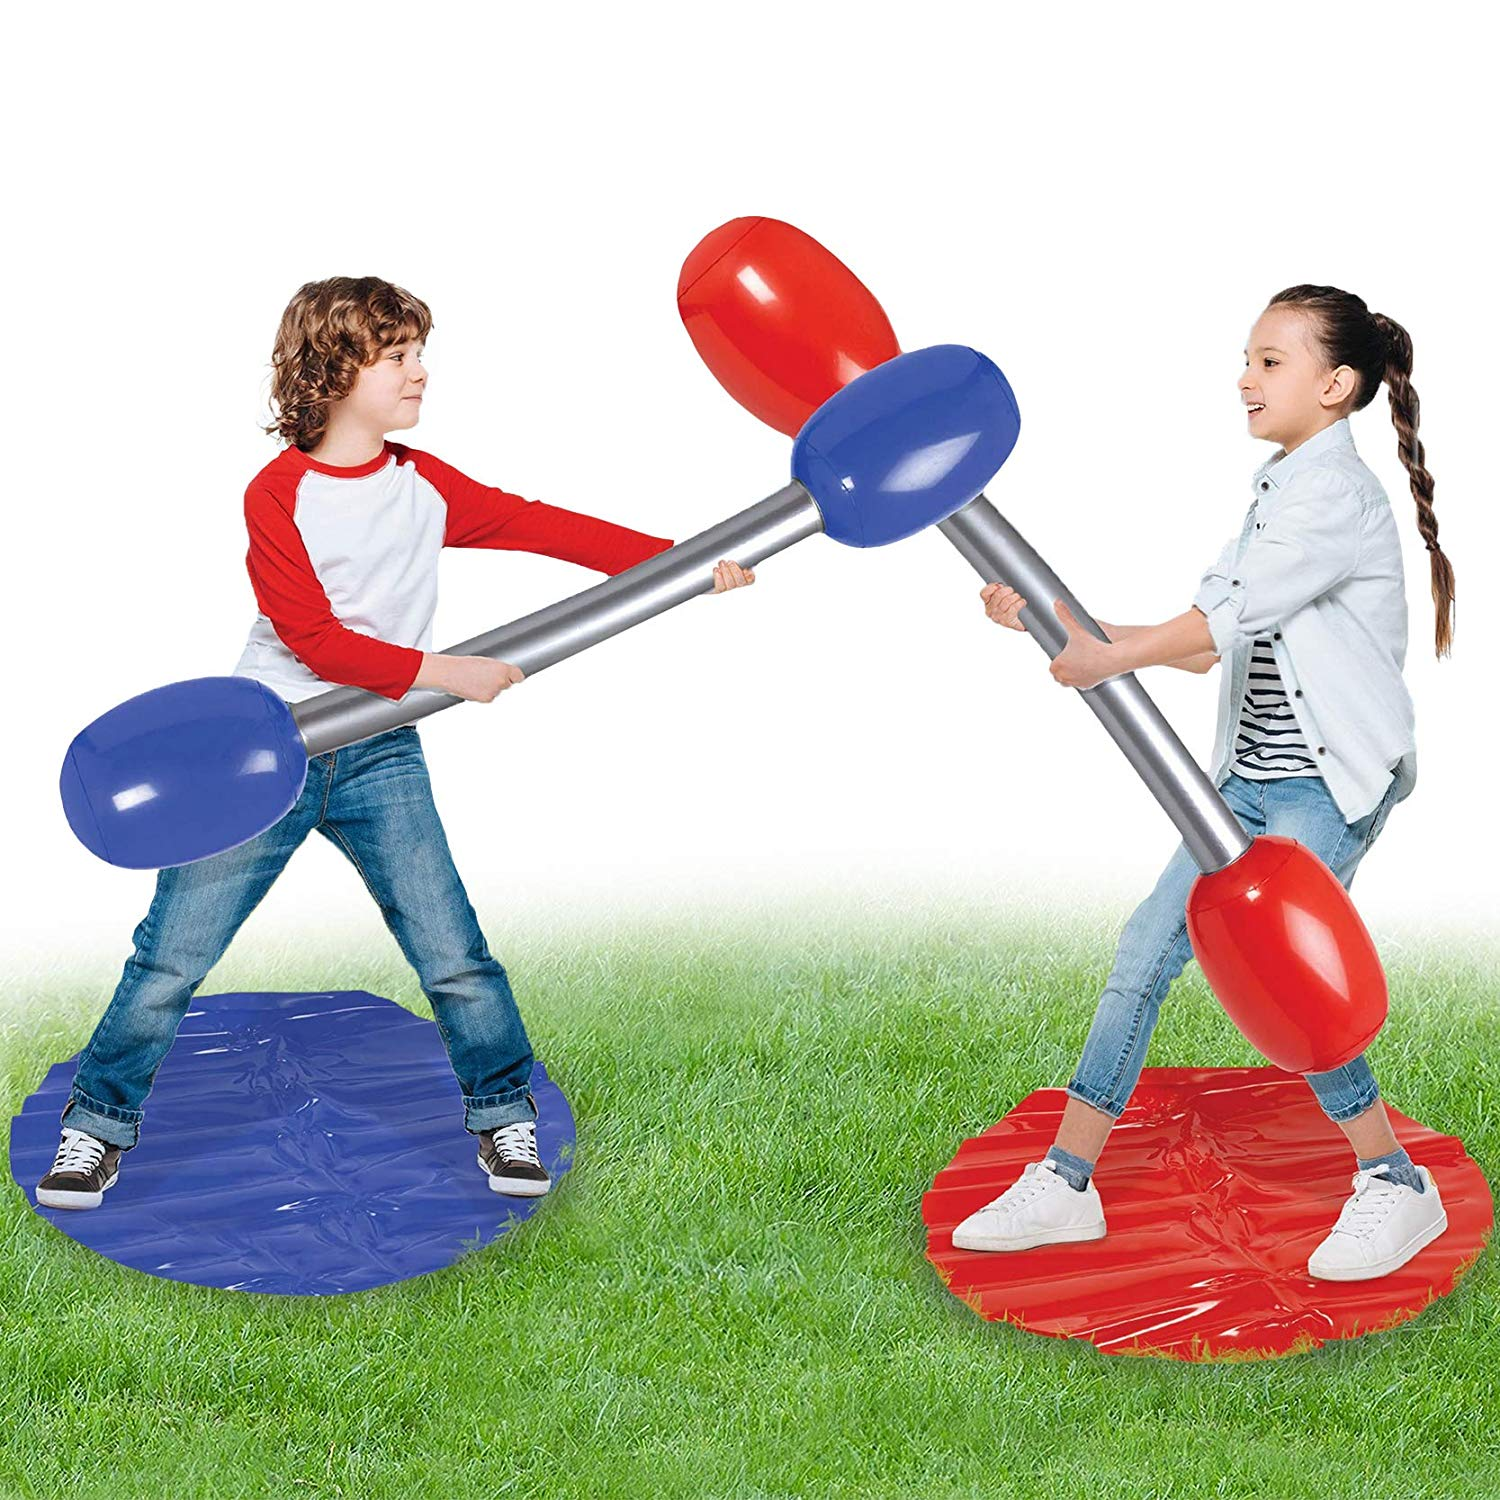 - Inflatable duel set £9.99